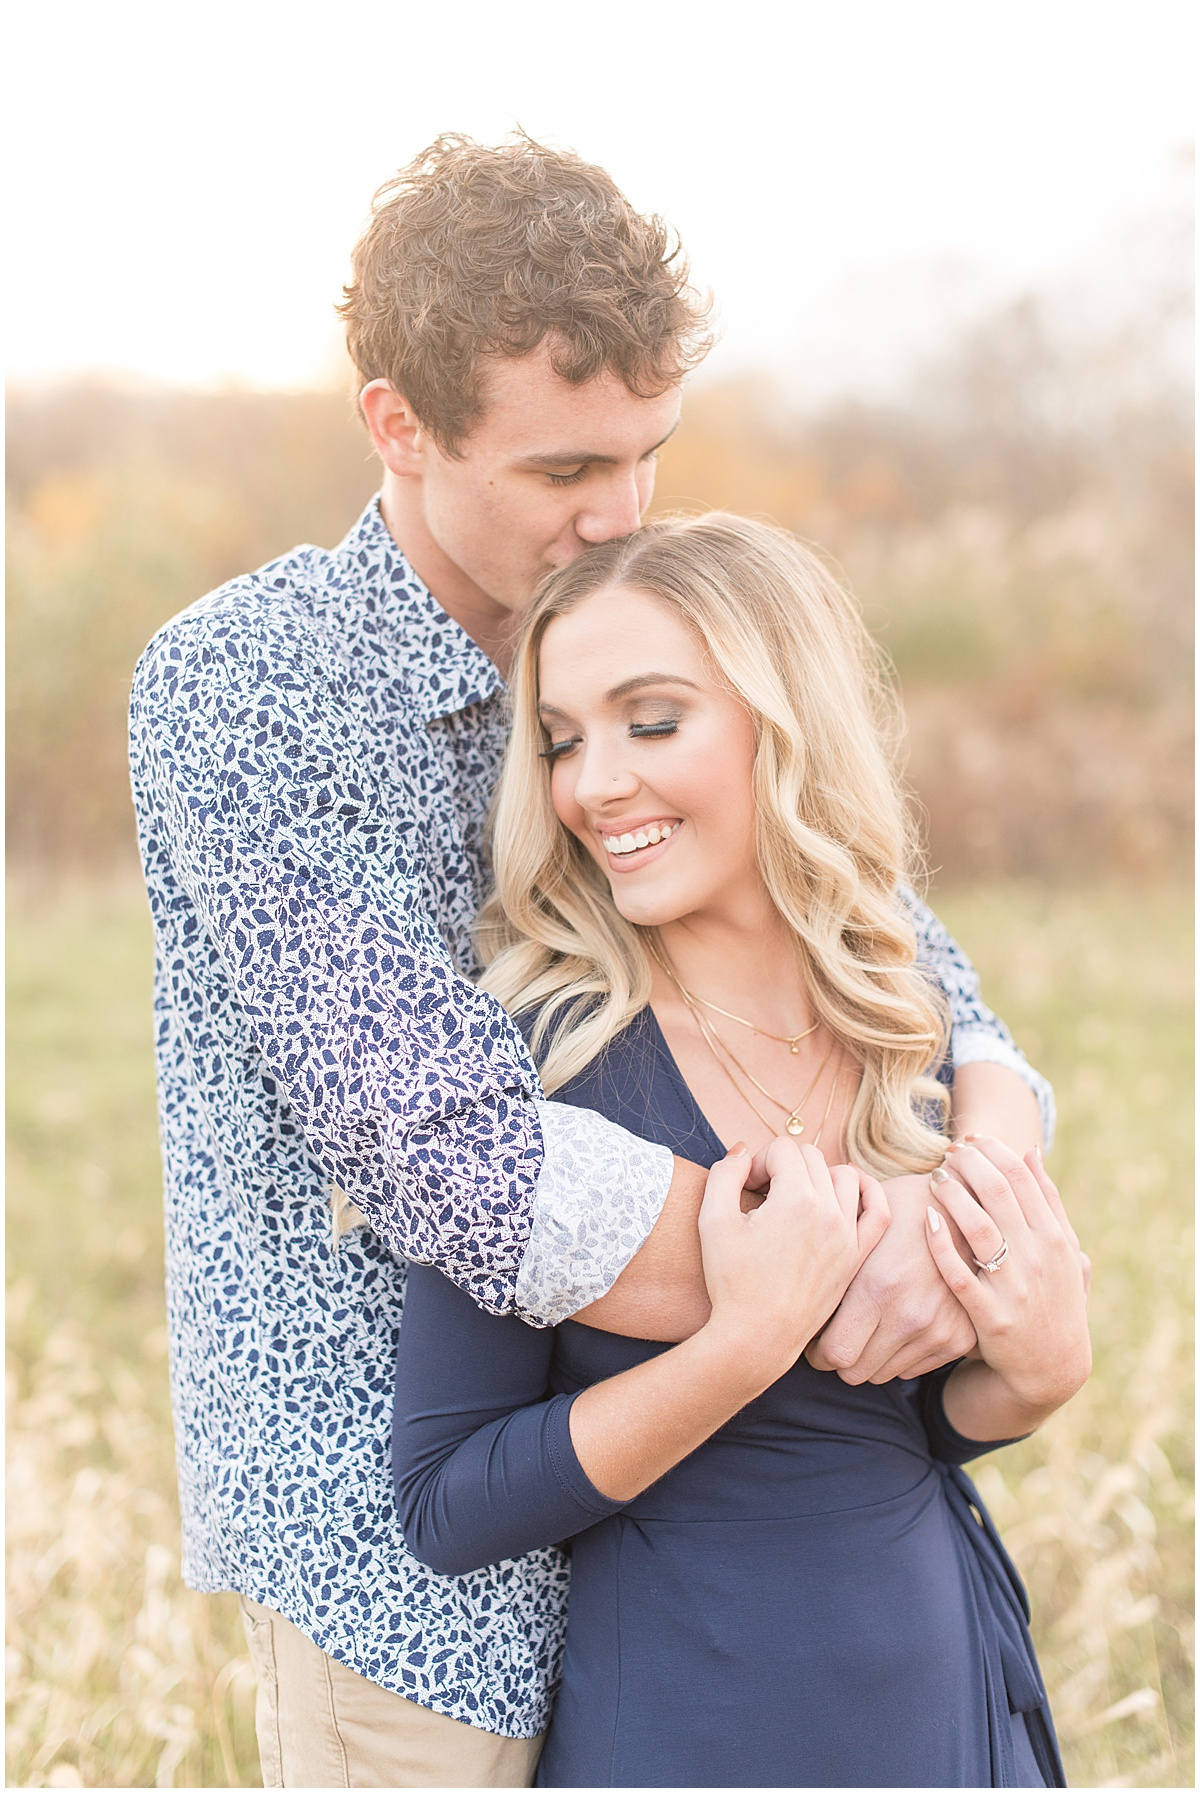 Wyatt Willson and Kaelyn Shircliff engagement session at Fairfield Lakes Park in Lafayette Indiana 29.jpg